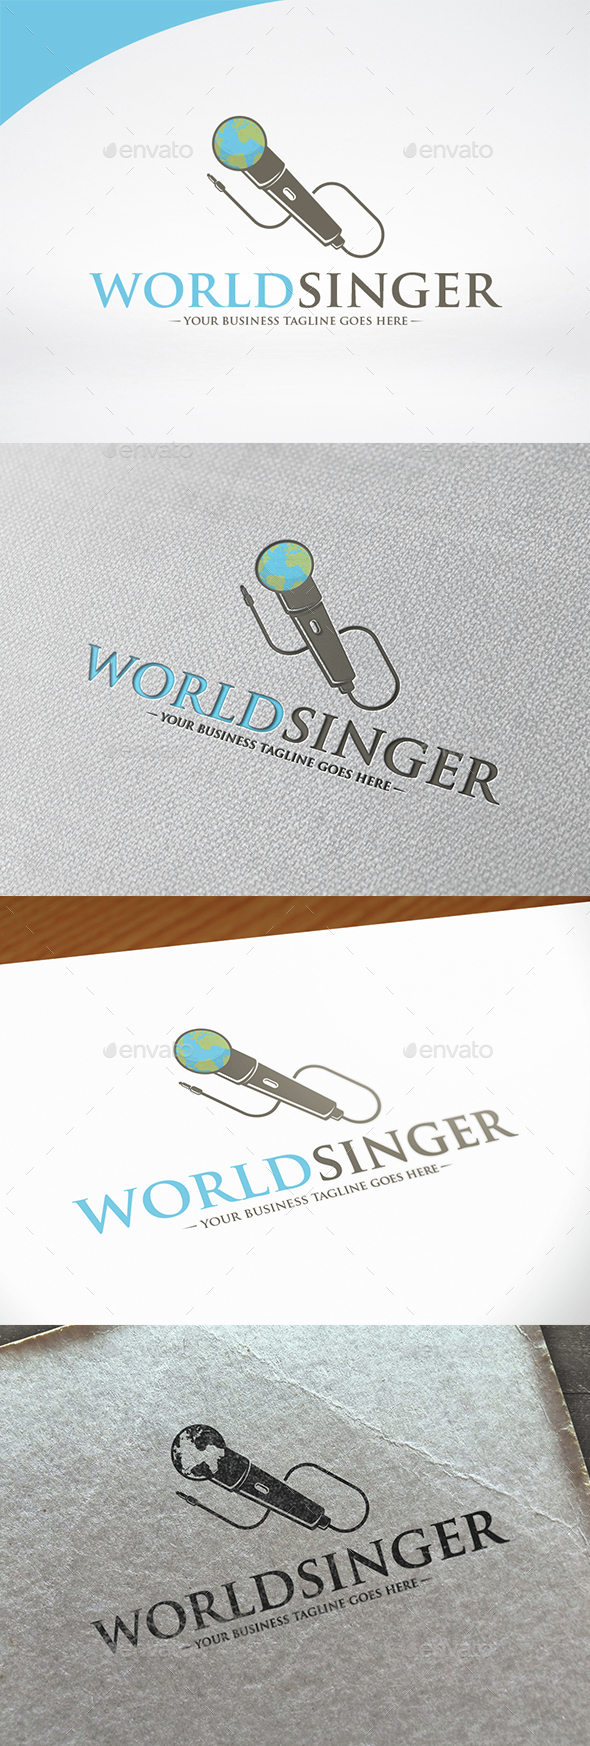 World Singer Logo Template - Objects Logo Templates